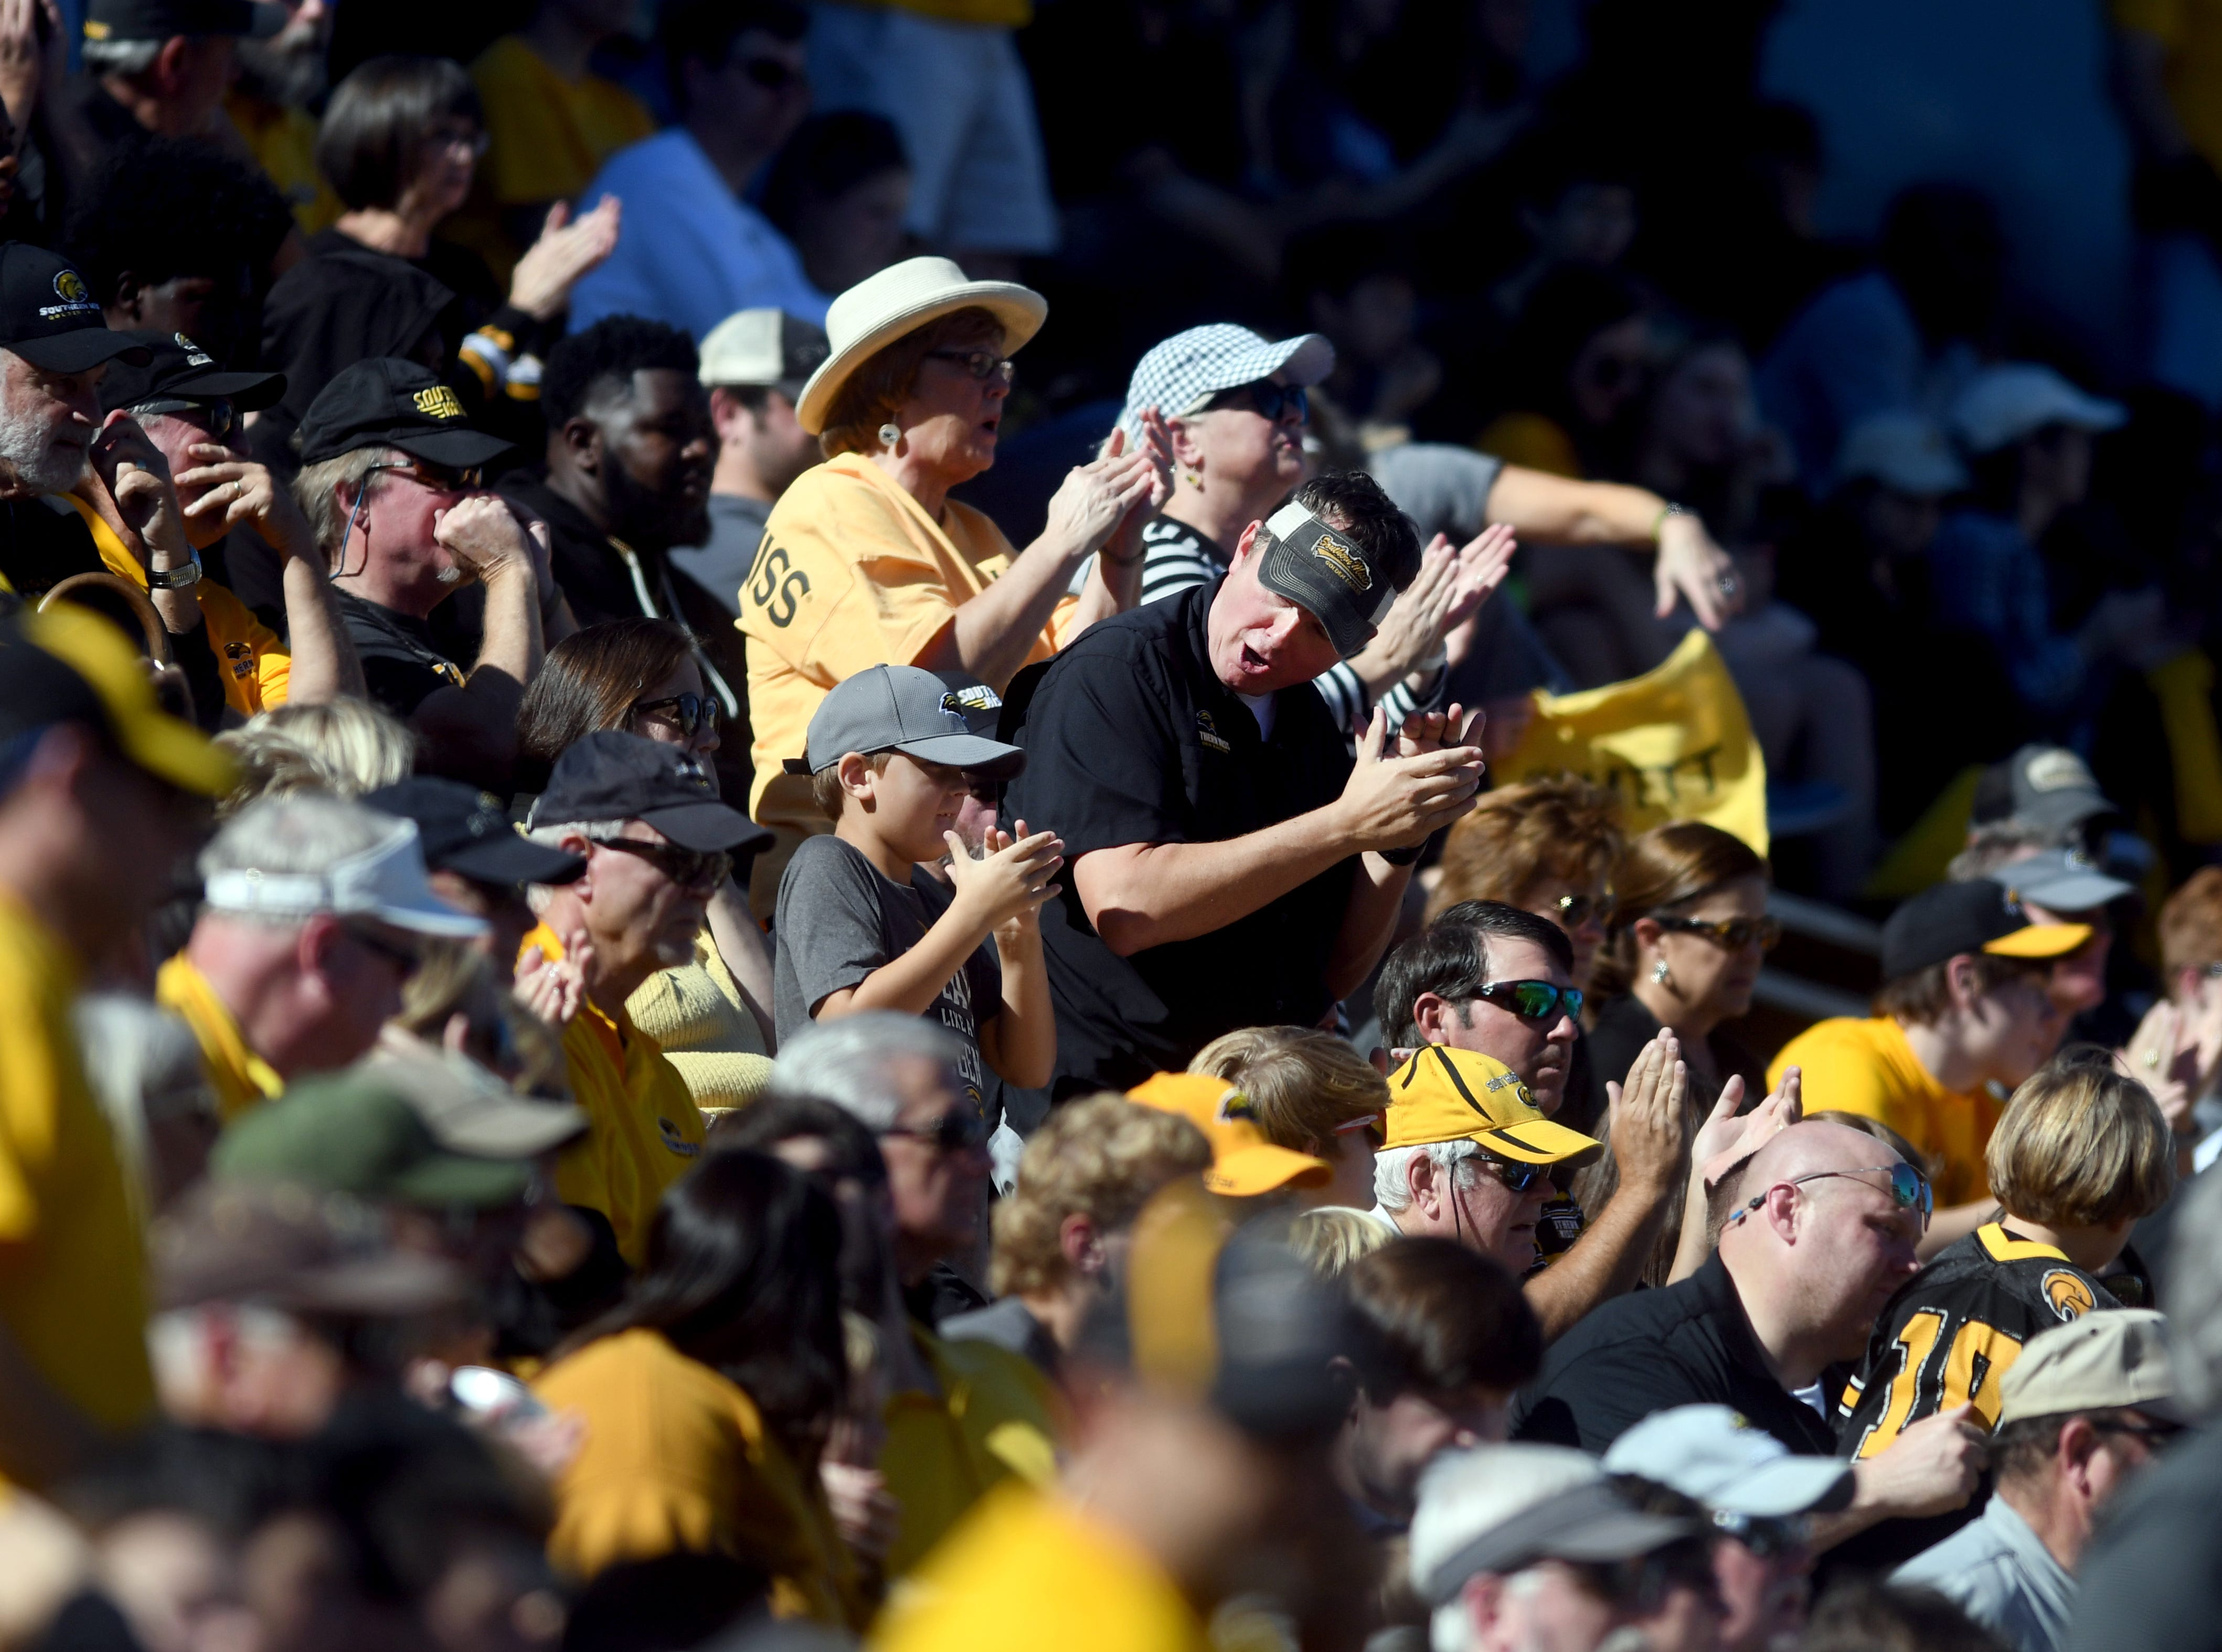 Southern Miss fans cheer on their team in a game against Marshall at M.M. Roberts Stadium on Saturday, November 3, 2018.